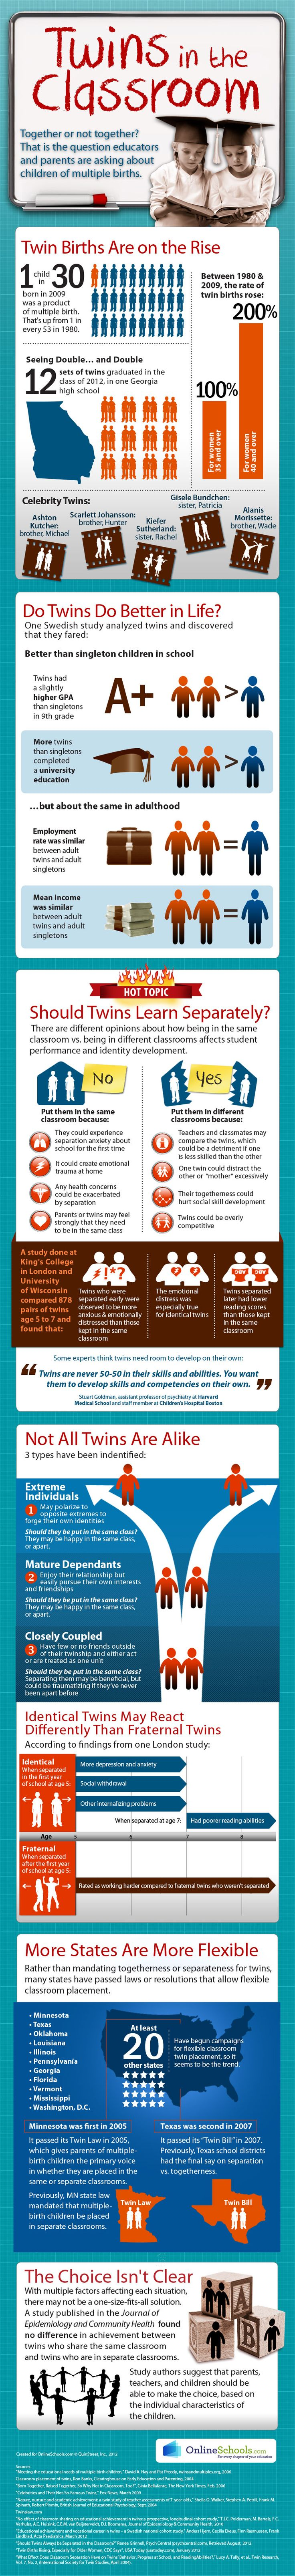 I recently came across this interesting infographic, and wanted to share it for any readers with twins (or if youre just generally fascinated about what its like to raise twins, as I am). I had no idea there was actual legislation on this. I personally think its a [...]